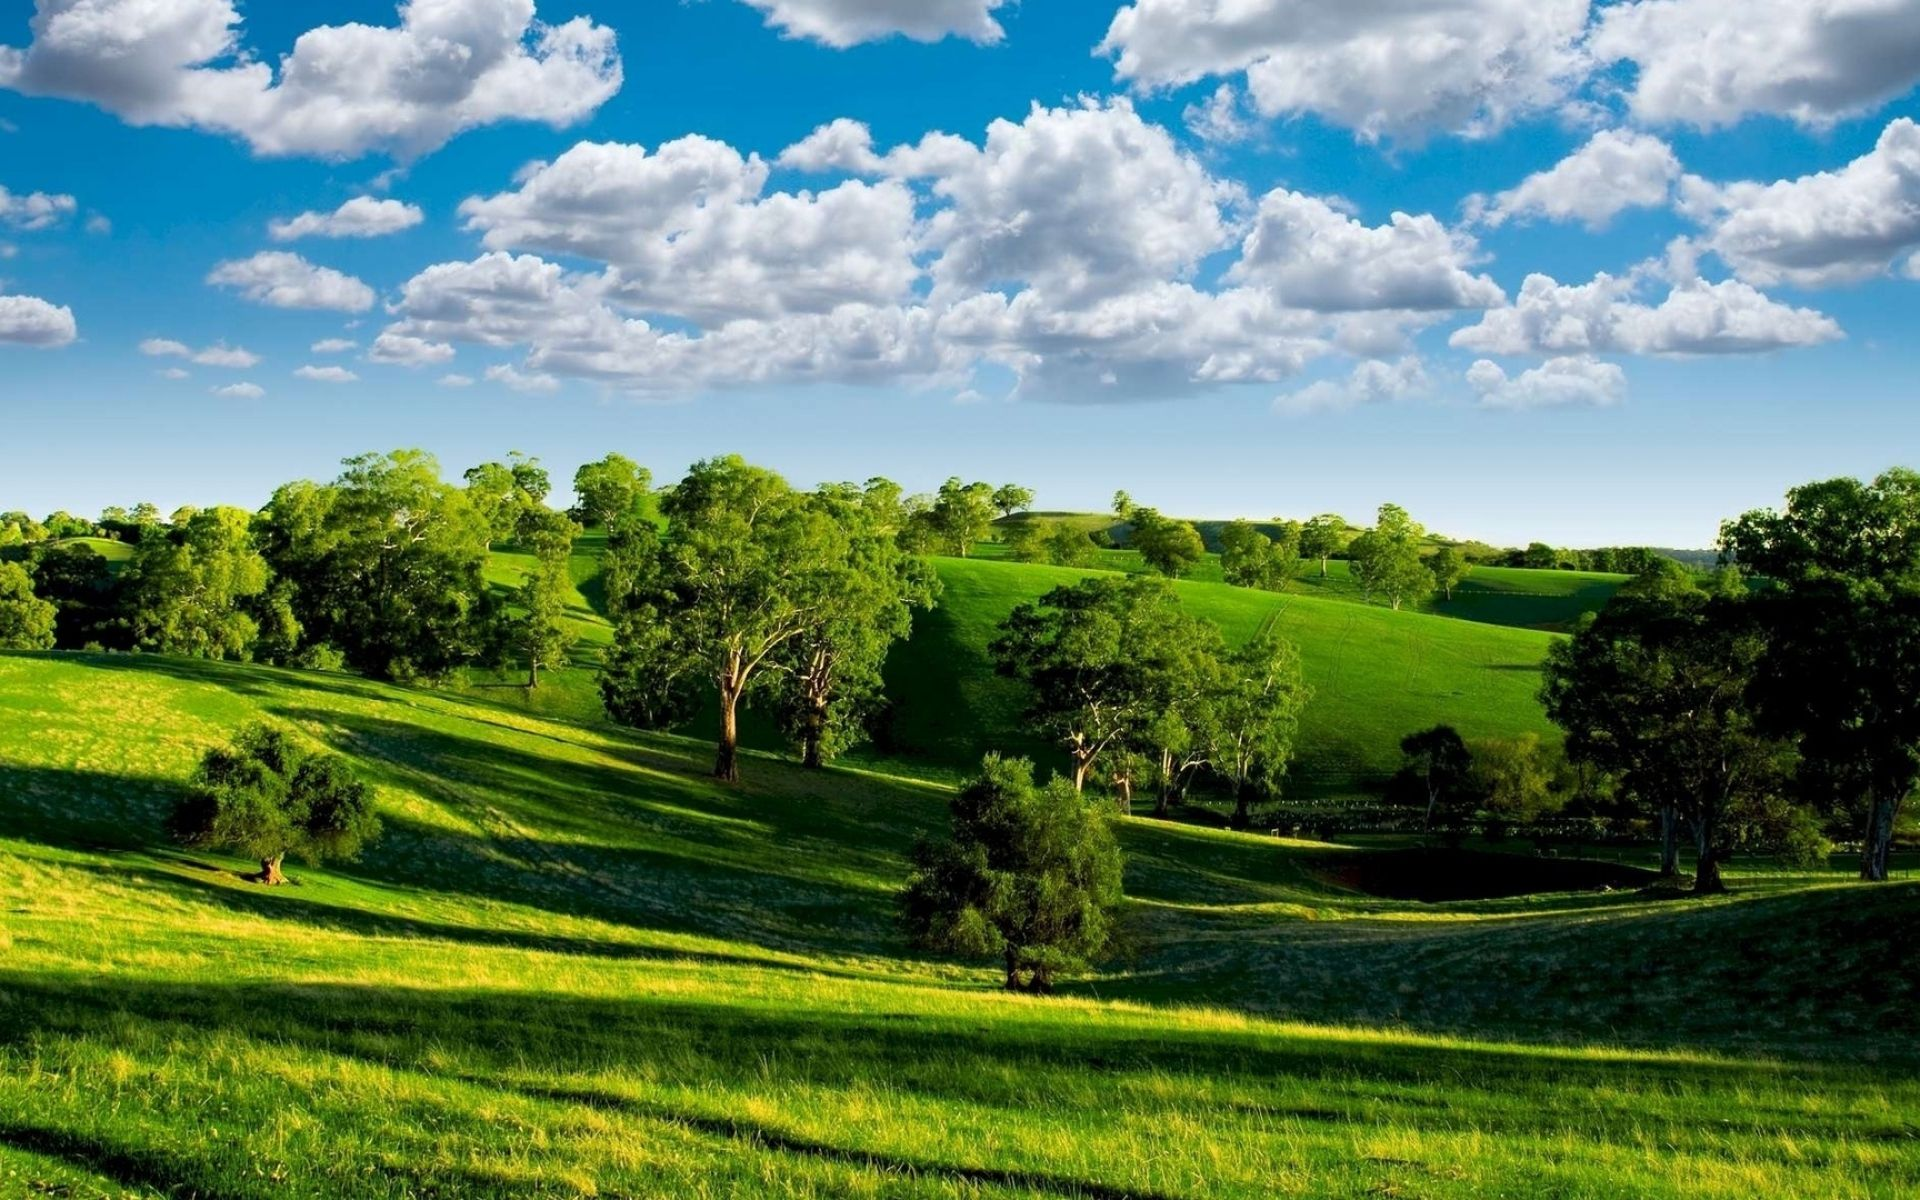 Download Wallpaper 1920x1200 Summer Hills Trees Green Meadows Clouds Sky Ease Landscape Shadows 1920x120 Green Landscape Landscape Landscape Wallpaper